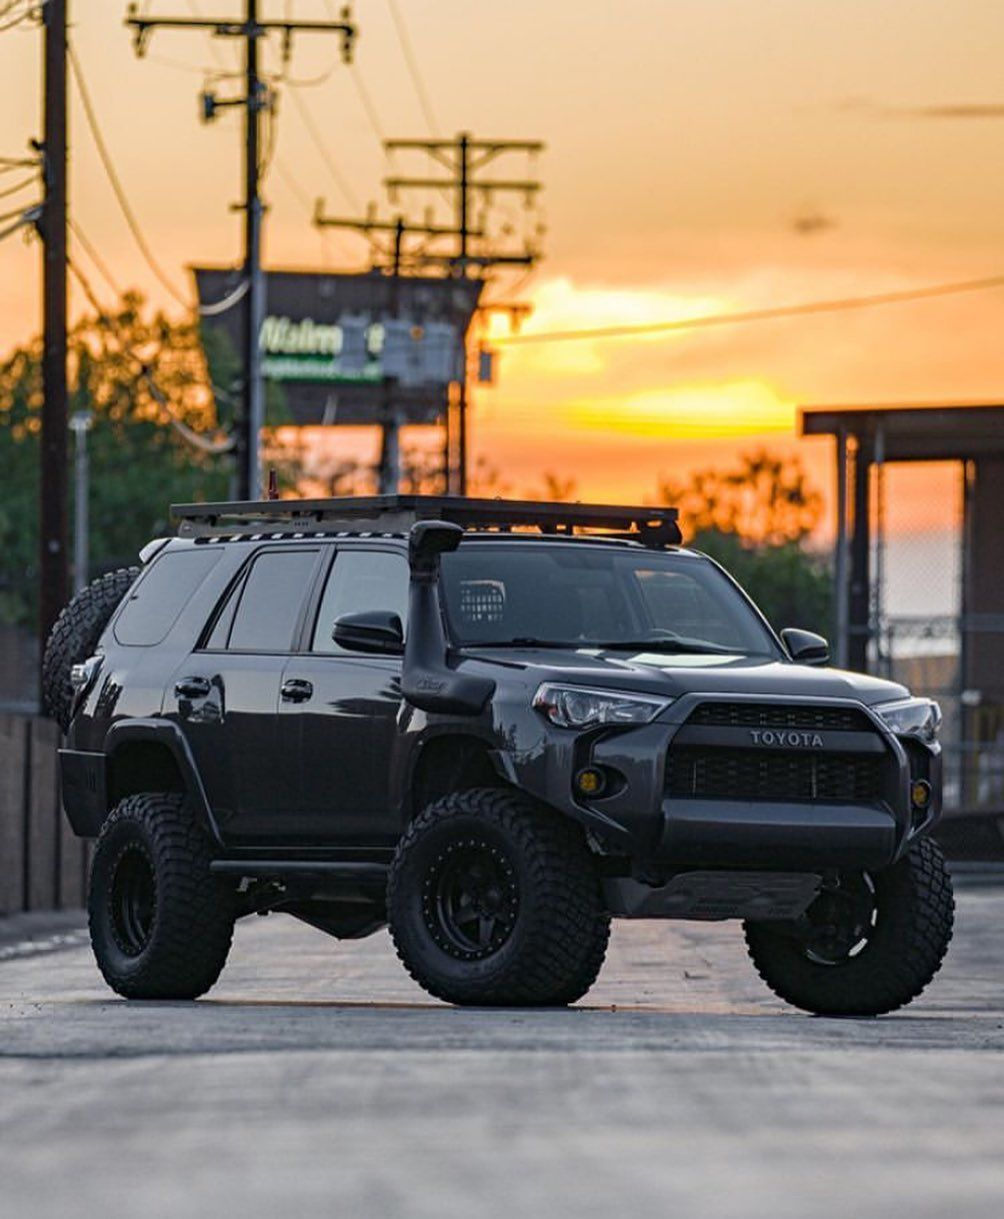 Toyota 4Runner offroad & overland adventure build in 2020